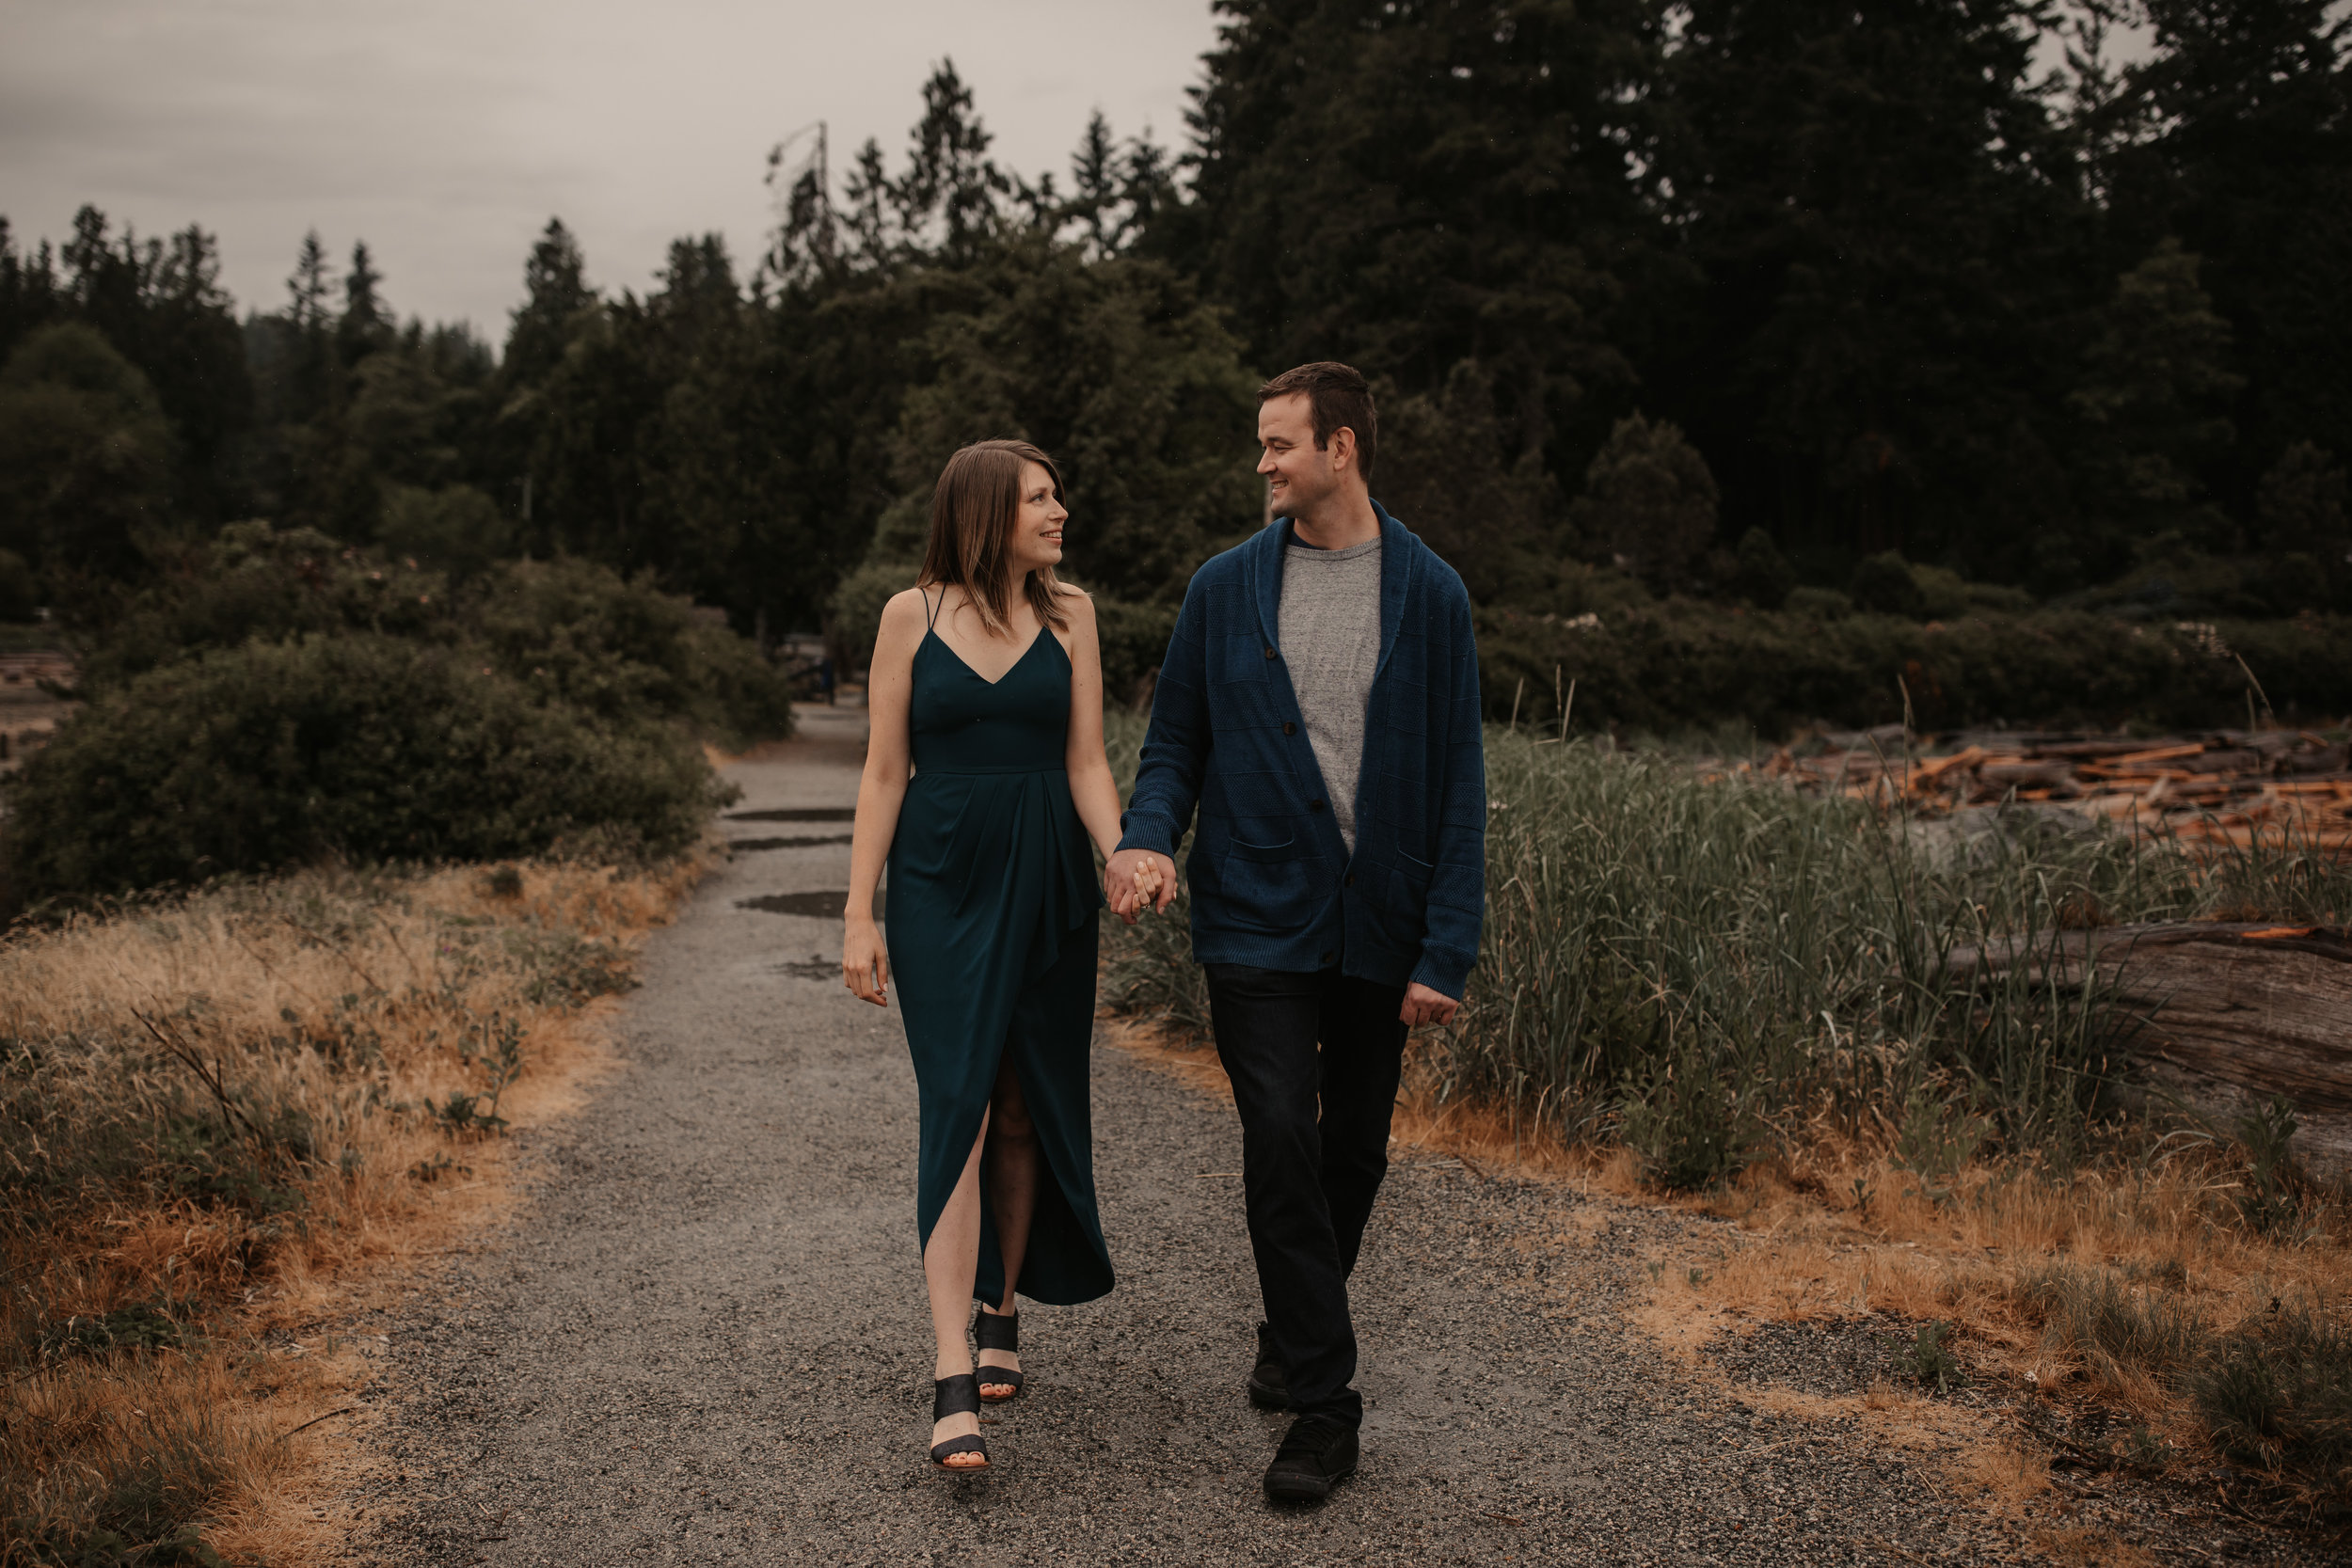 SUNSHINE COAST FOREST & BEACH ENGAGEMENT PHOTOS — Ashley & Antoine — JENNIFER PICARD PHOTOGRAPHY244.JPG